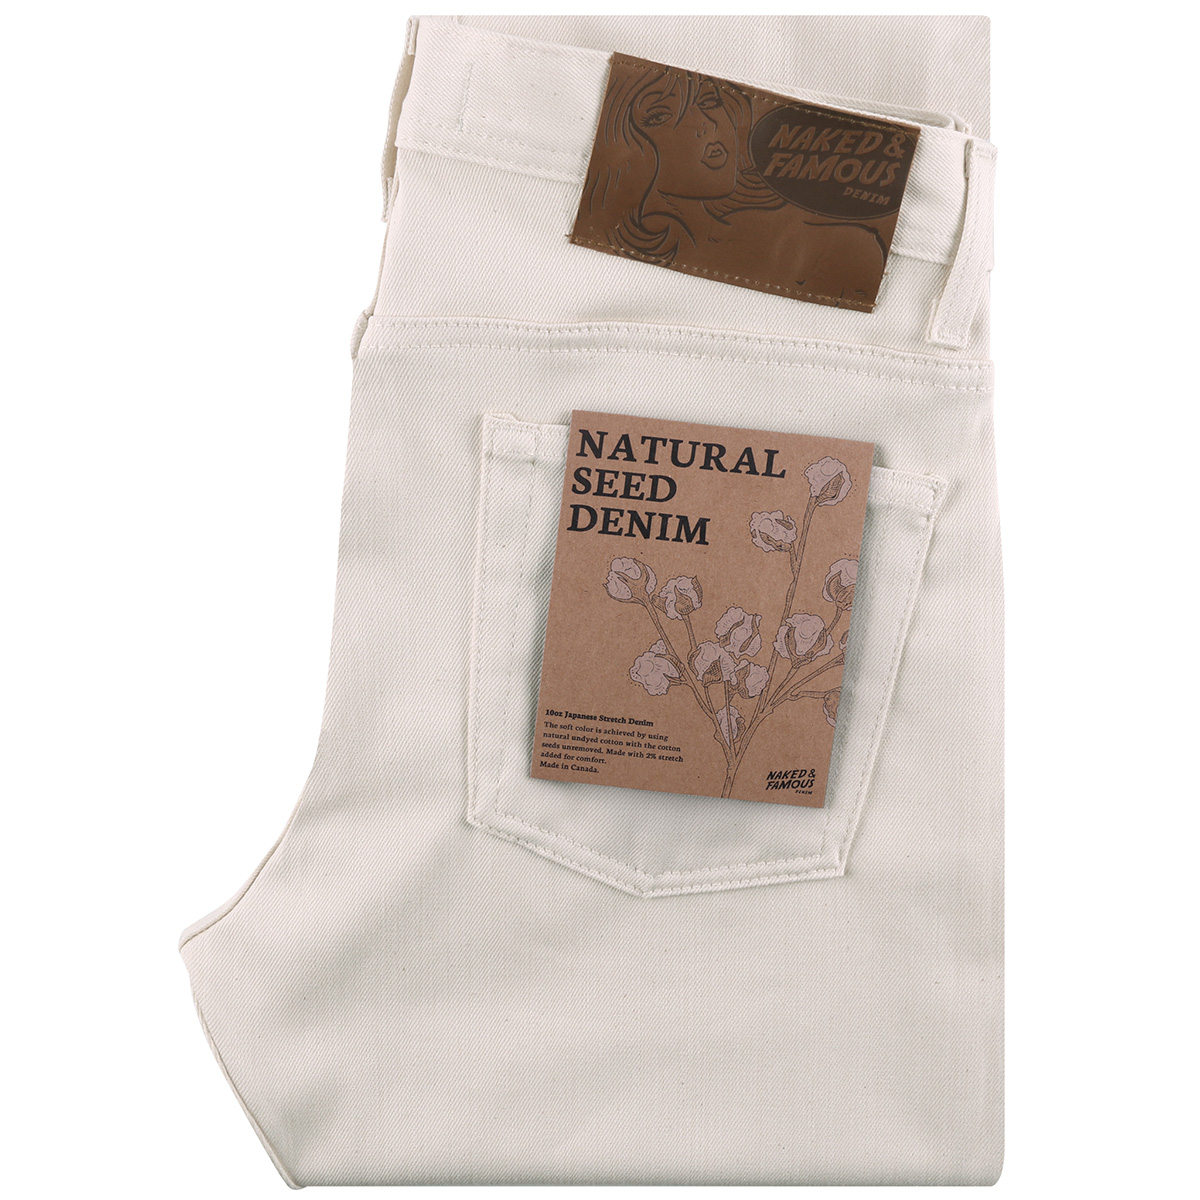 NATURAL SEED DENIM - Super Guy / Weird Guy / Easy Guy